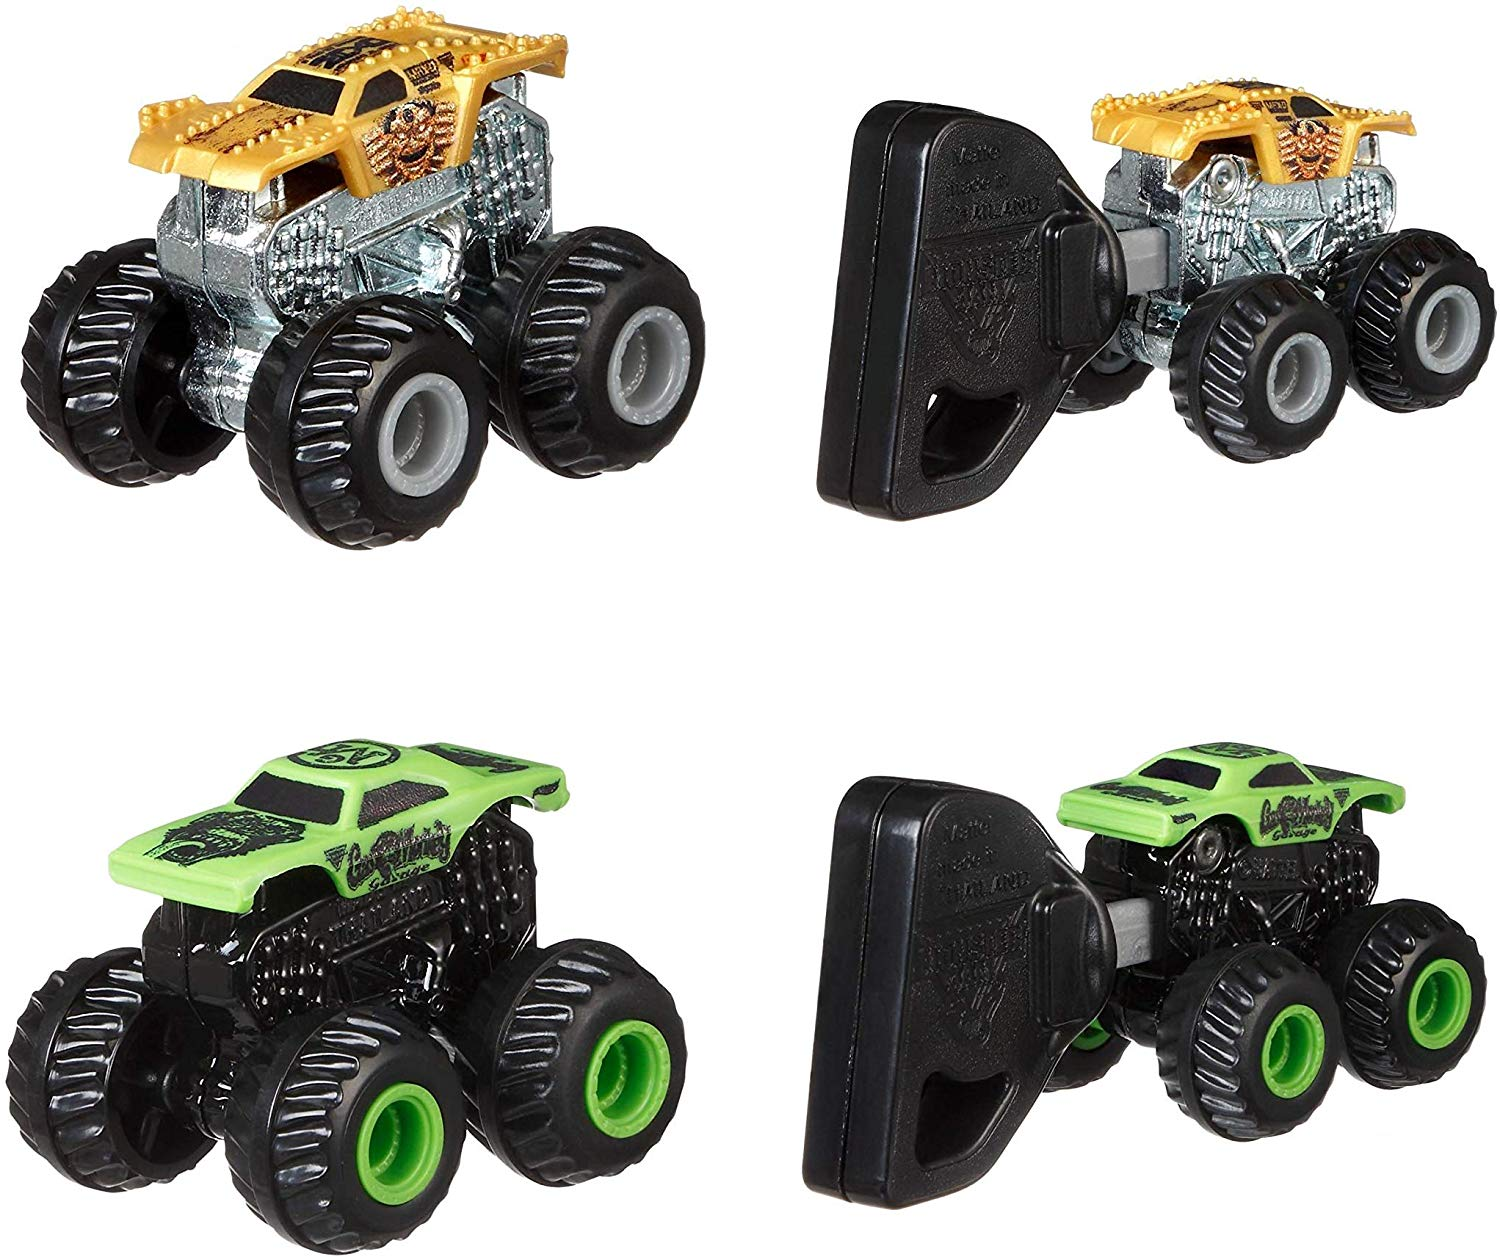 Hot Wheels Monster Jam Series 3 Mystery Trucks Blind Bag Party Favours Pack Of 10 B07l6knkt1 4 The Minifigure Store Authorised Lego Retailer